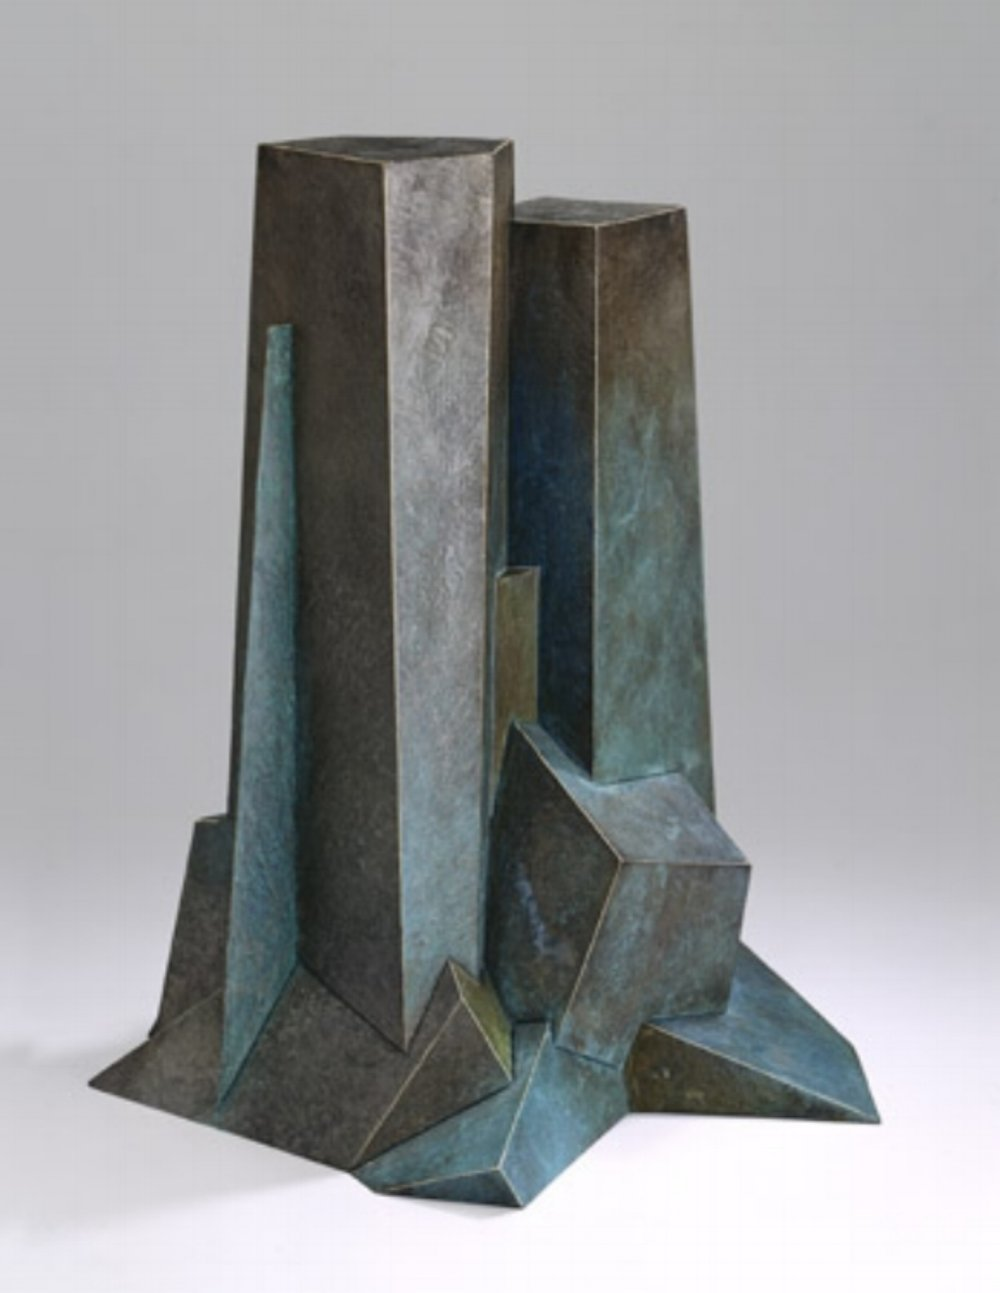 Bruce Beasley,  Upthrust , 1993, cast bronze with patina 4/9, 19 x 16 x 13